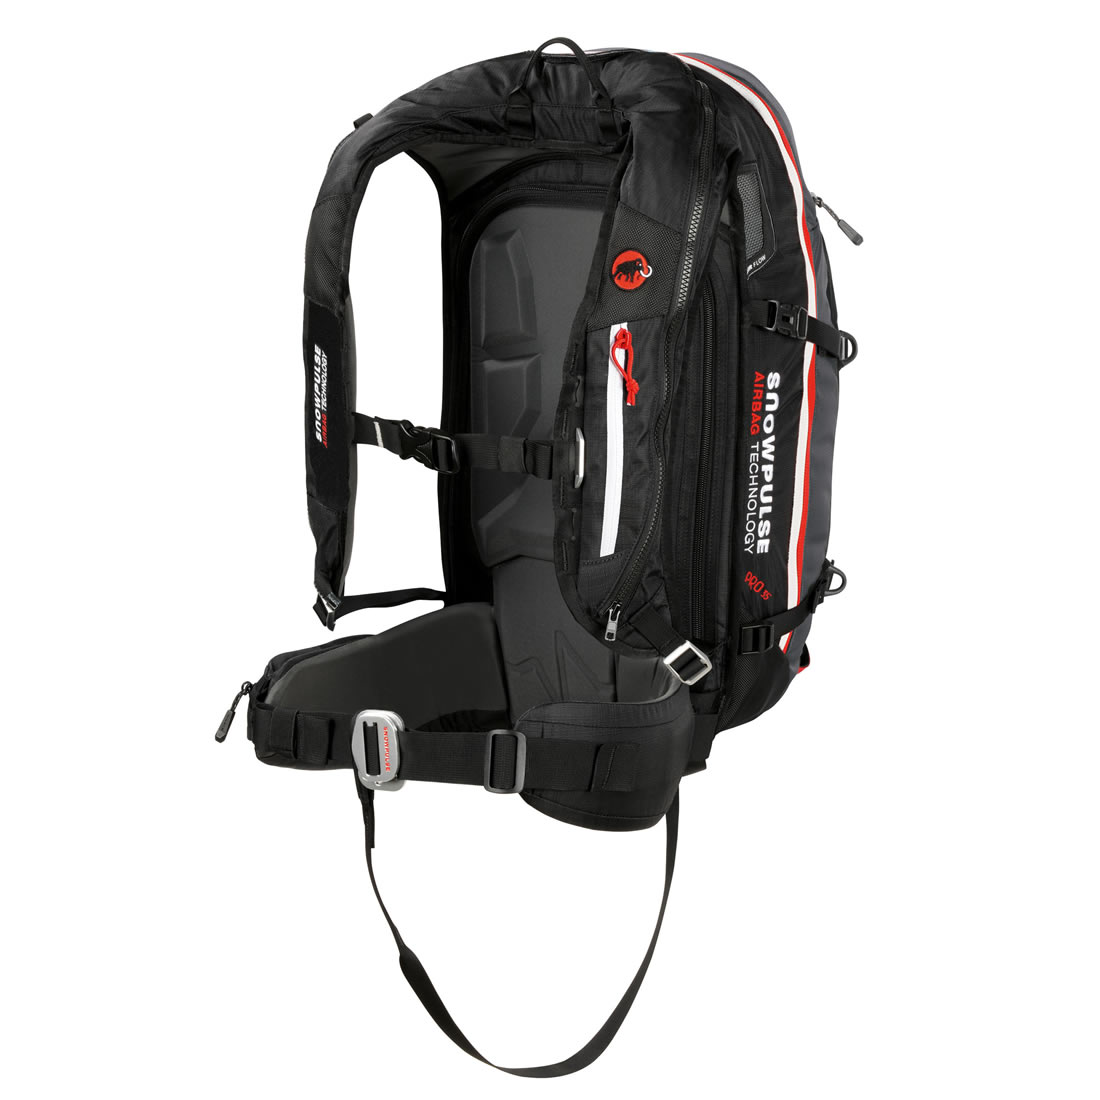 Sac à dos airbag Mammut Pro Protection Airbag